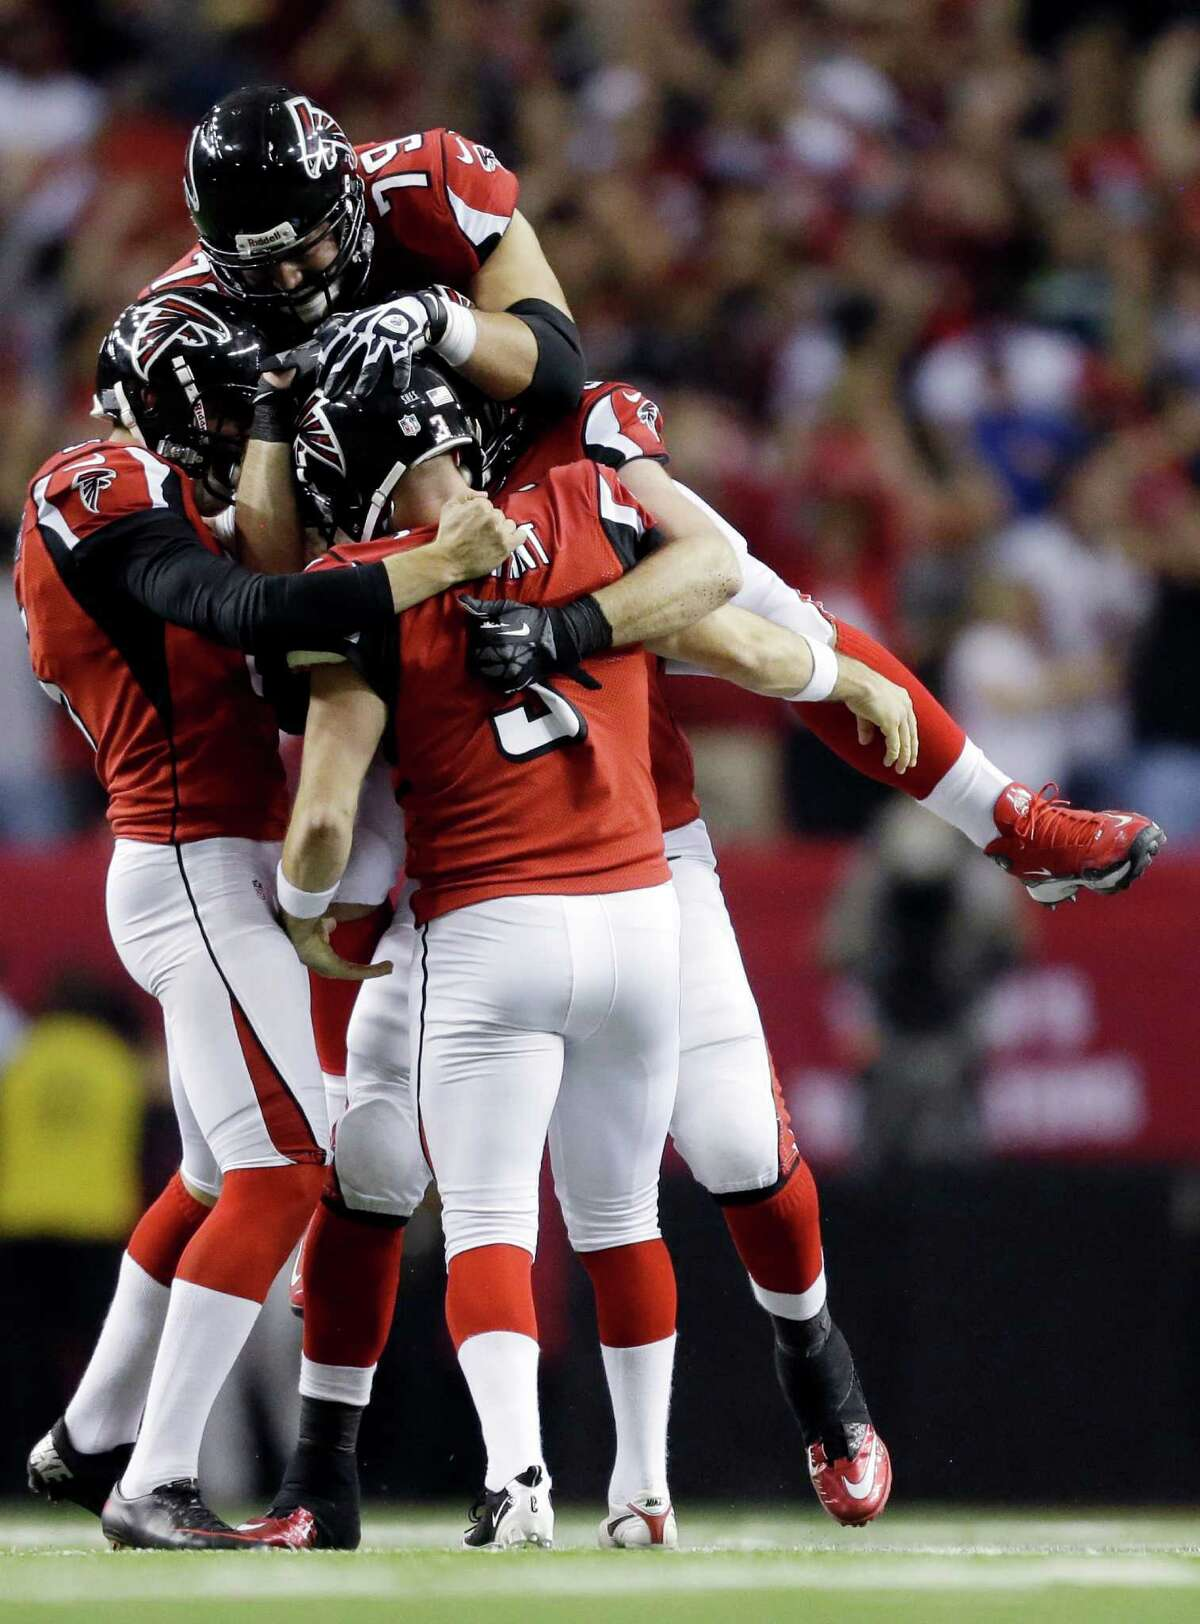 Atlanta Falcons kicker Matt Bryant (3) is congratulated by teammates after making the game-winning field goal during the second half of an NFC divisional playoff NFL football game against the Seattle Seahawks Sunday, Jan. 13, 2013, in Atlanta. The Falcons won 30-28. (AP Photo/David Goldman)